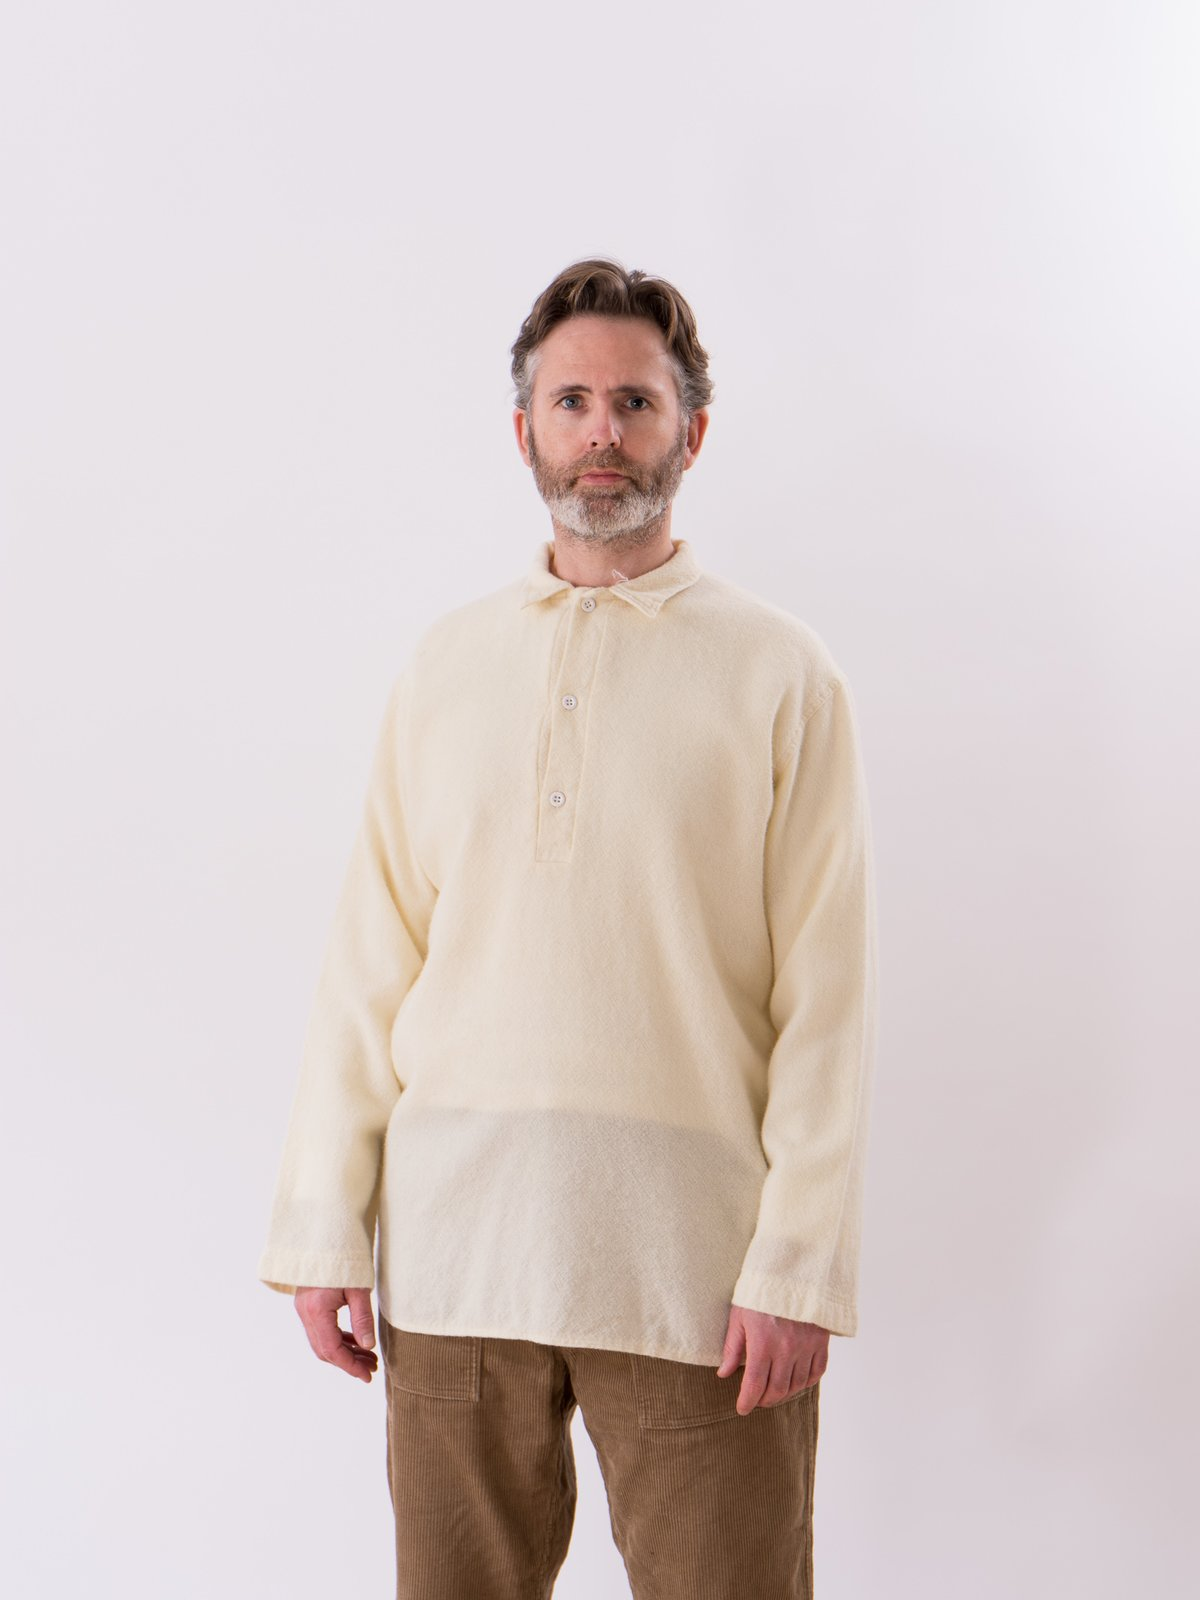 Cream Weavers Stock Pullover Tail Shirt - Image 2